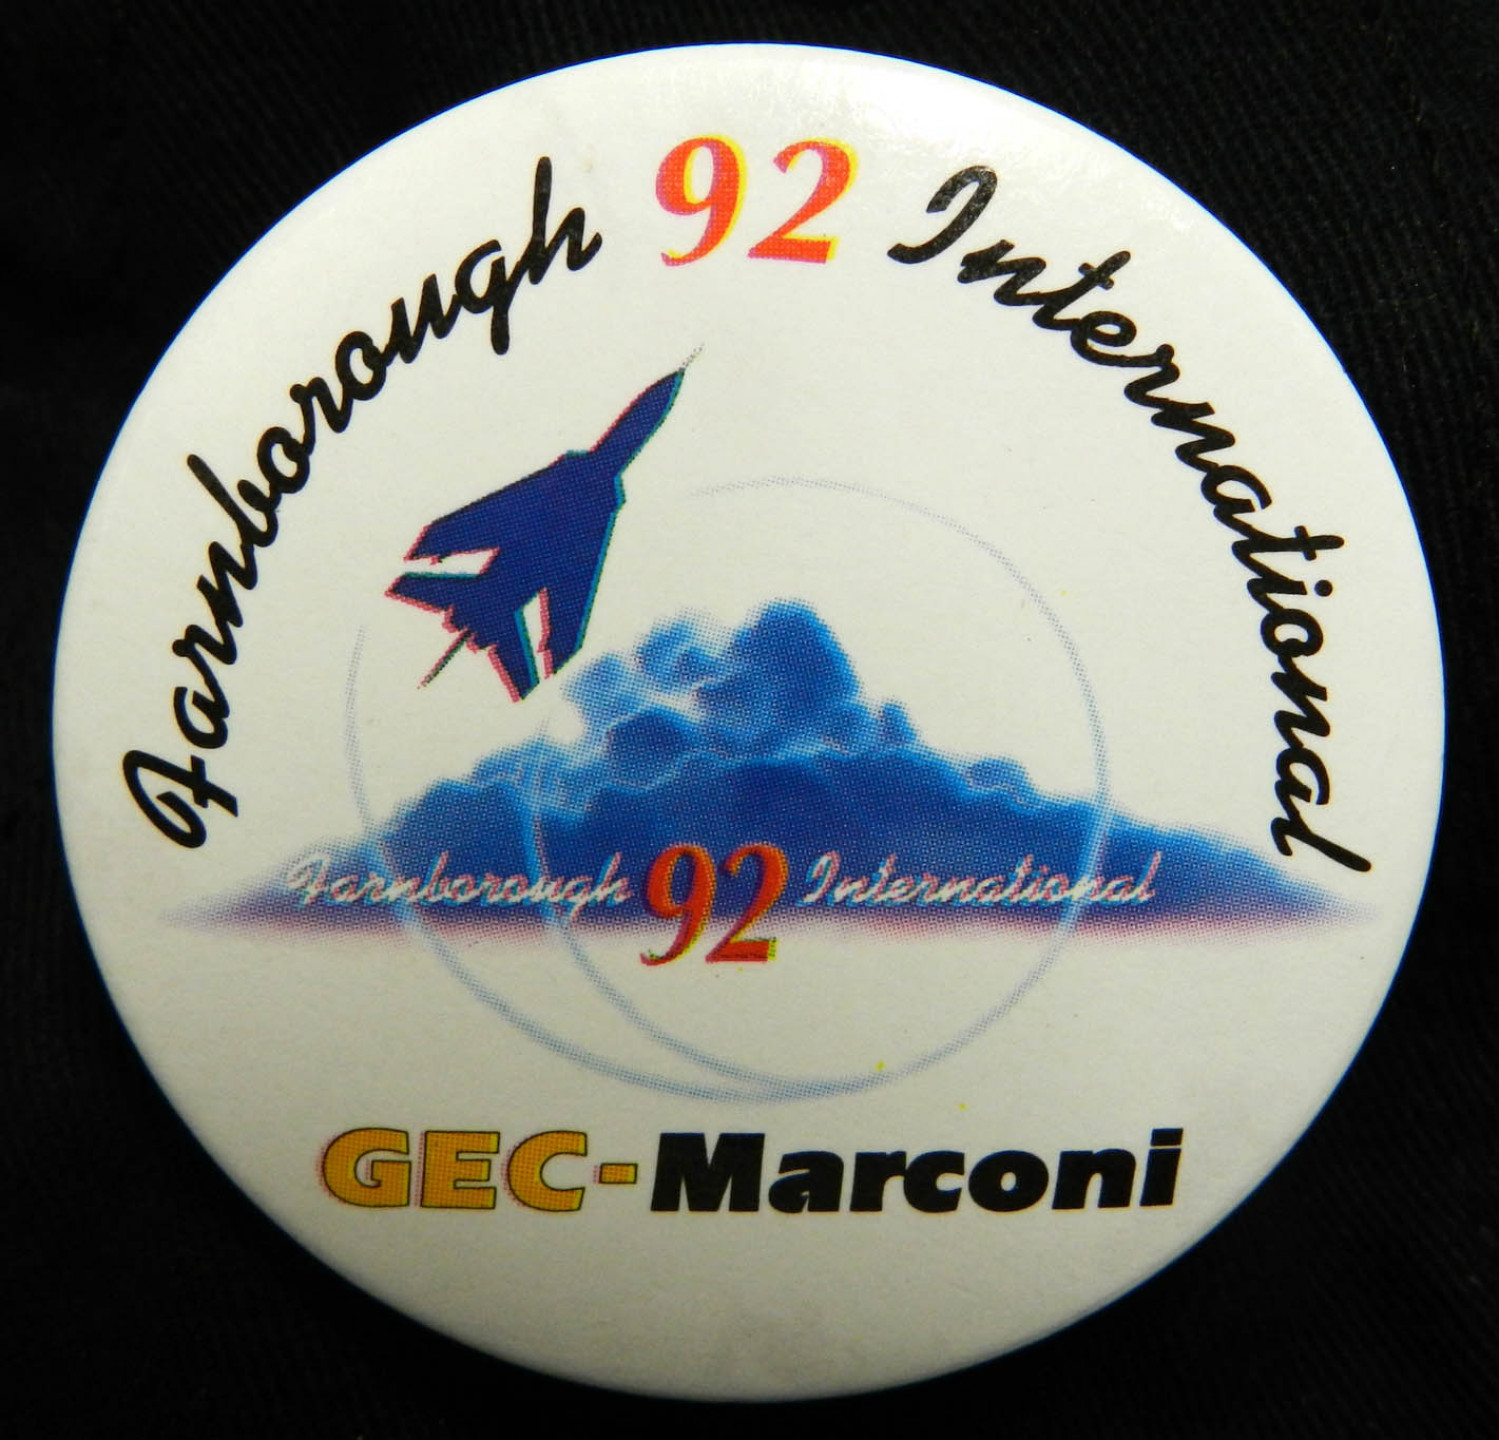 Farnborough International '92 Badge